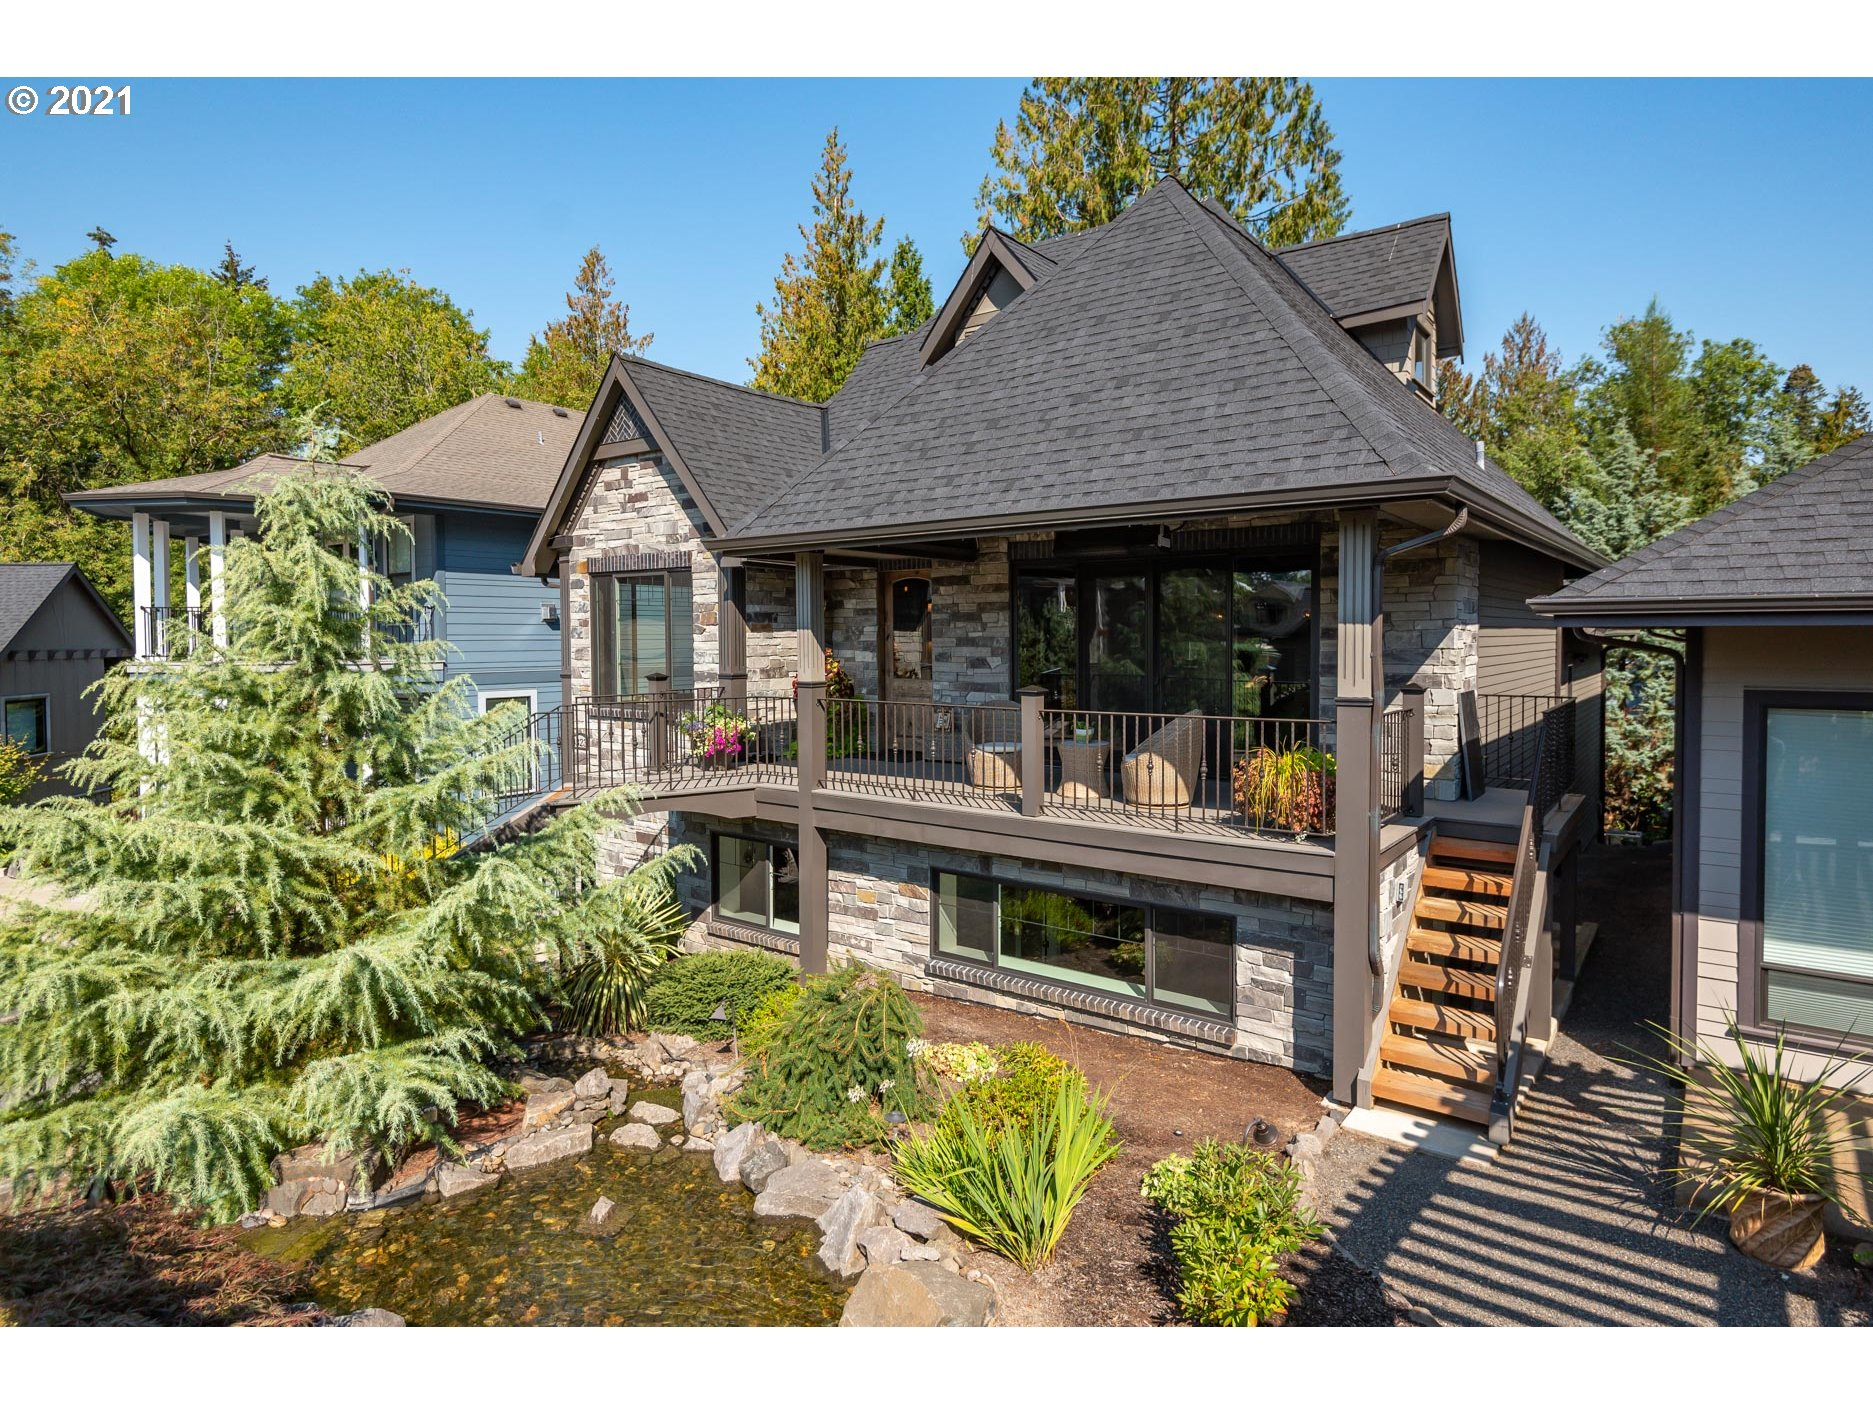 A rare opportunity in The Watermark Gardens, the superior craftsmanship you'd expect to see in the builder's personal residence. Waterfall entrance, 23ft natural wood ceilings, ledgestone FP, solid white oak hardwoods, designer carpet, earth advantage platinum & more!   An amazing community with a creek & wooded area, full outdoor kitchen, TV/Music, fire pit, bocce court & more! Great for friends, family, & community events and activities!  All just minutes to Hwy 217 & 26. See amenities list.